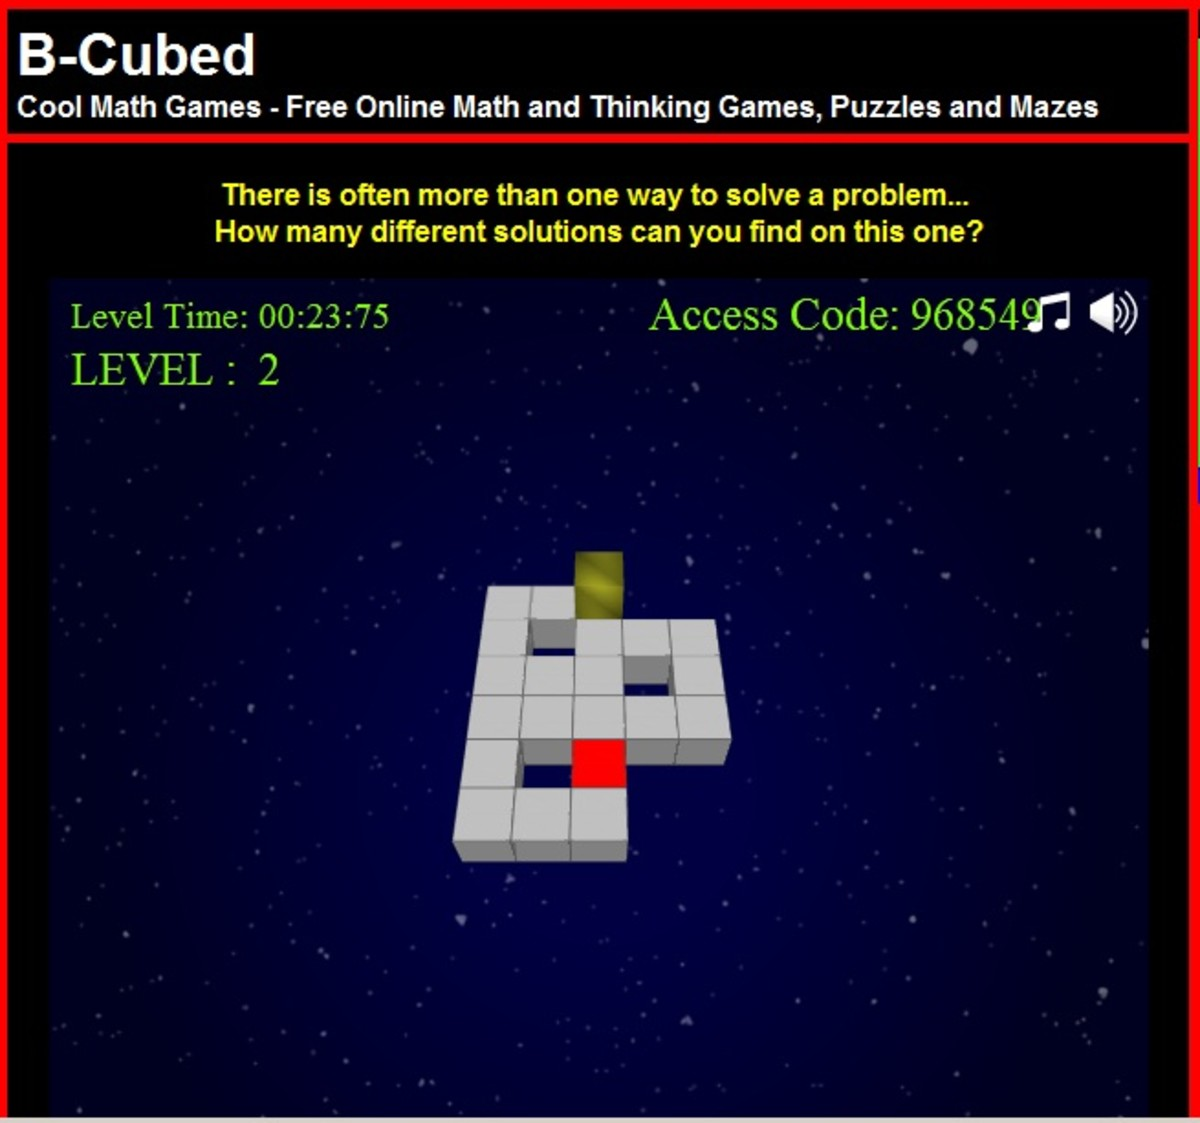 cool math games b-cubed